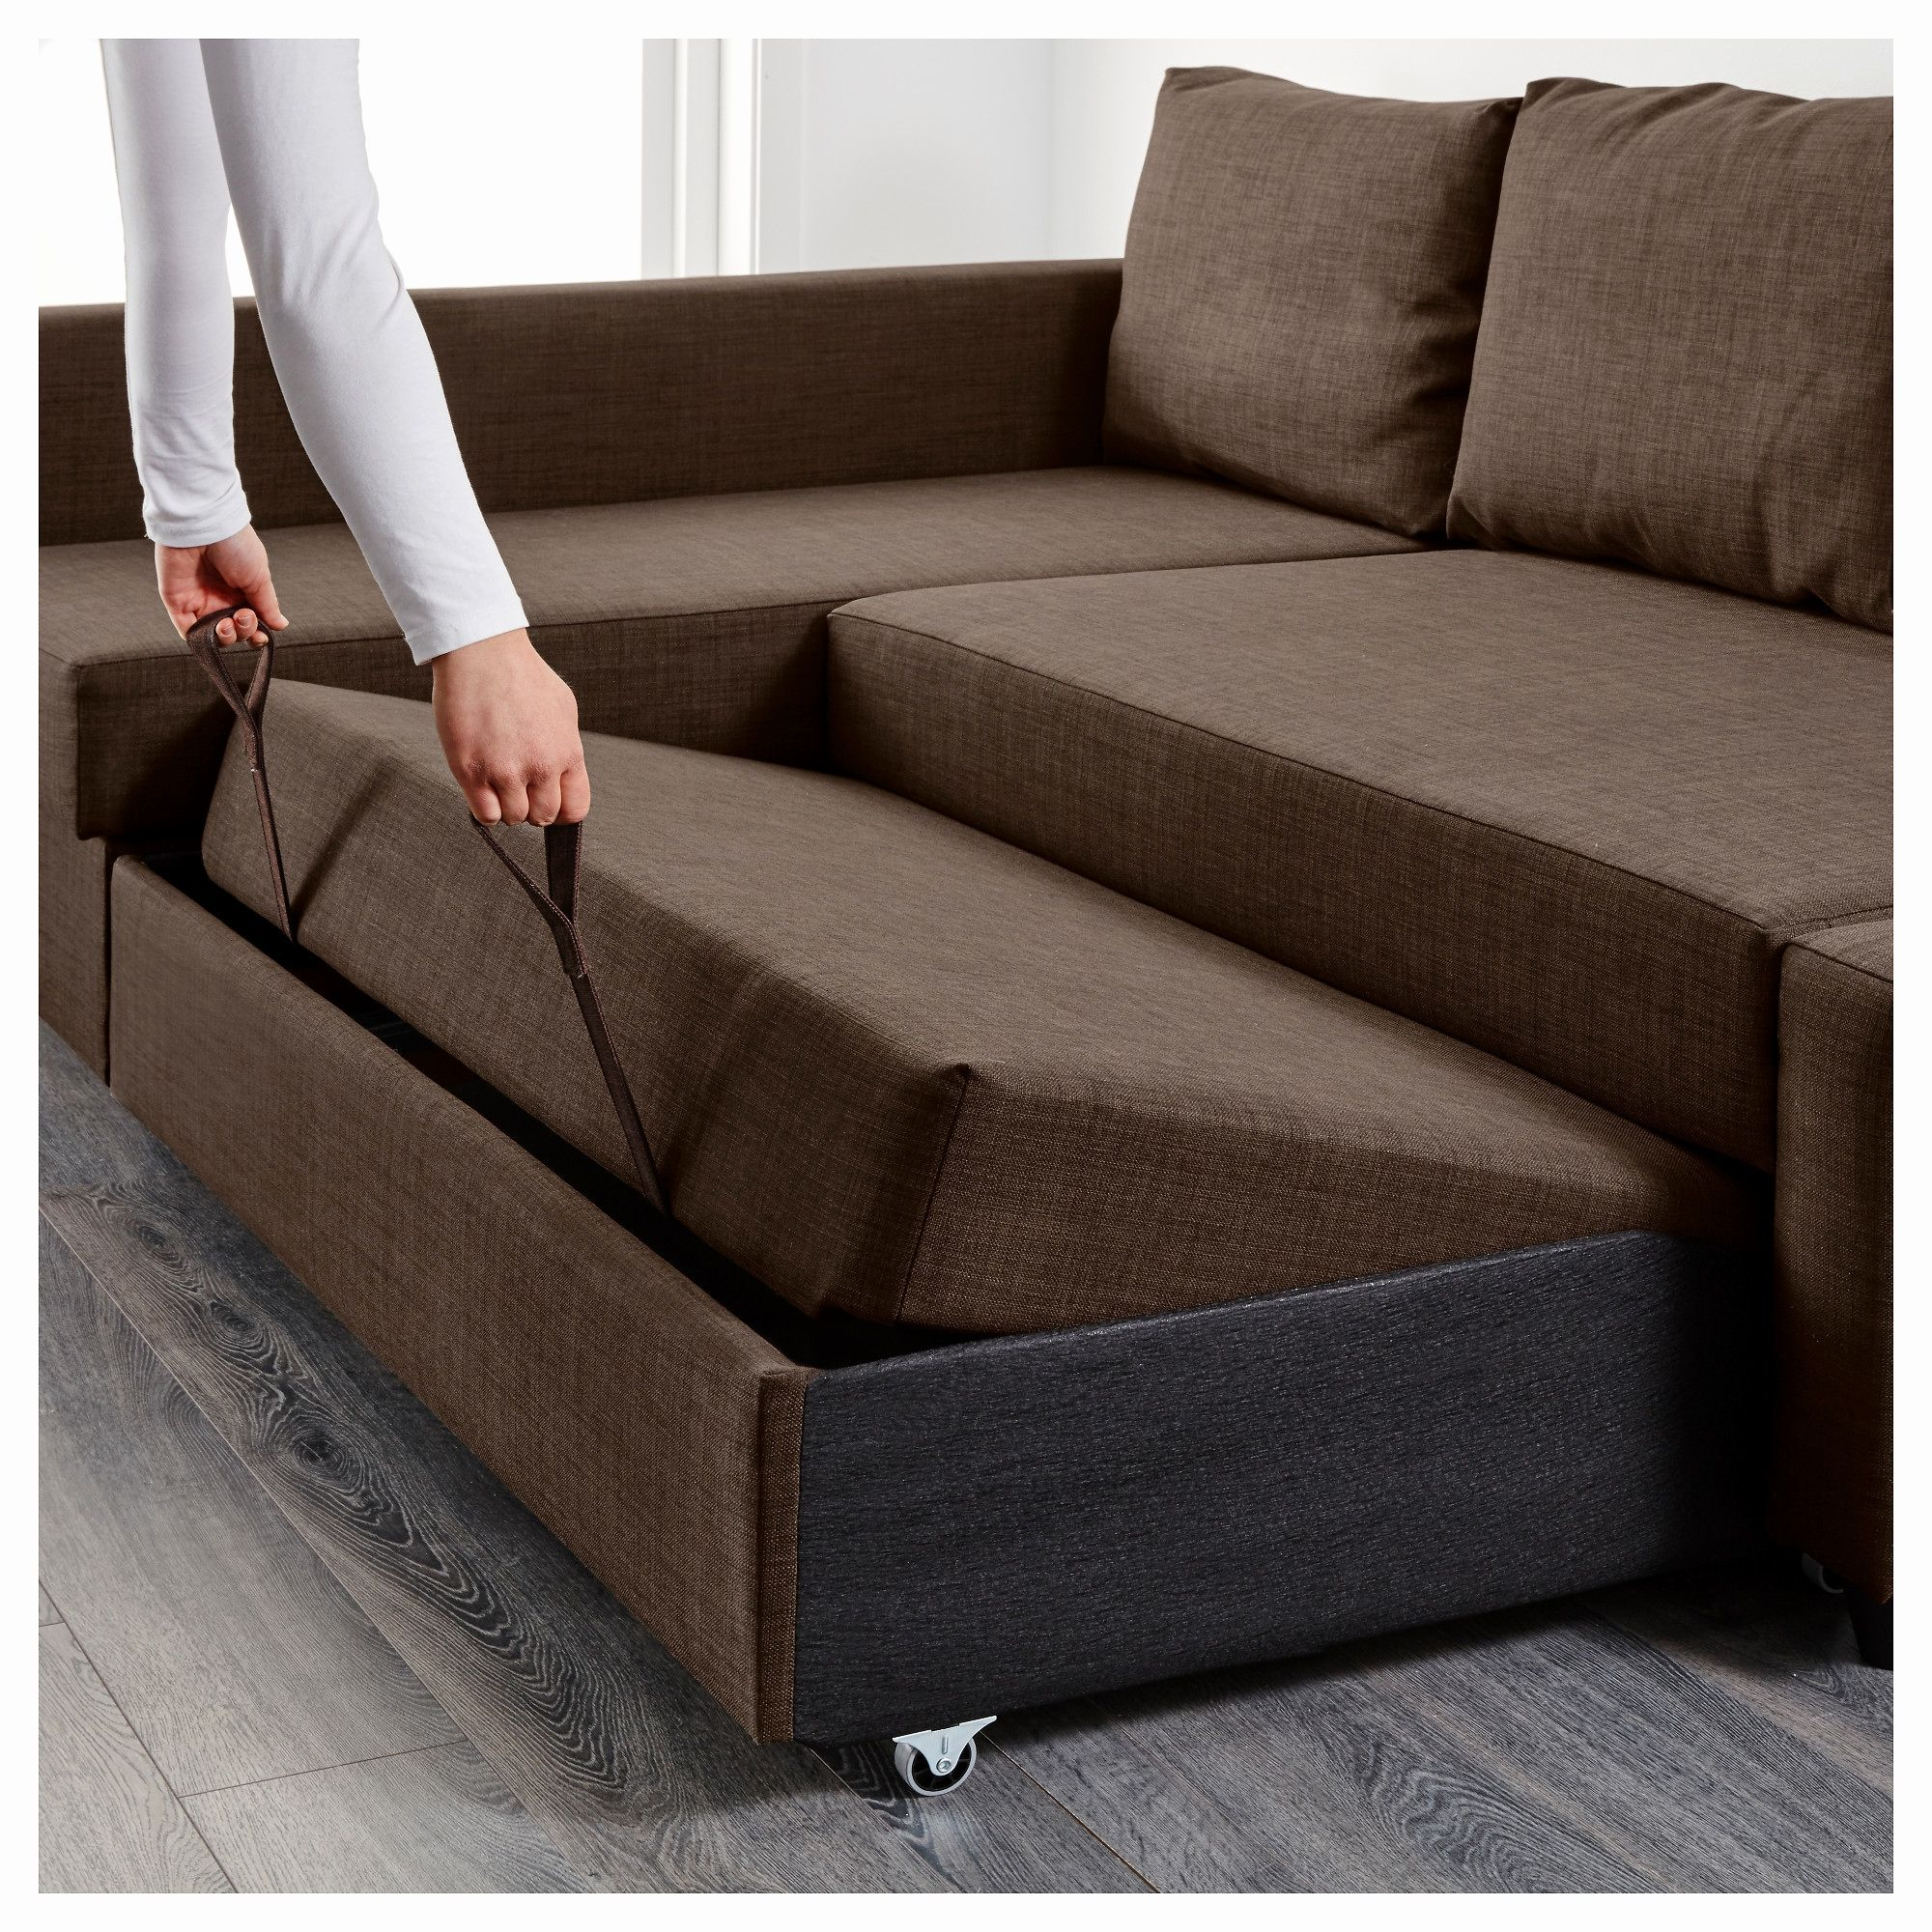 sofa sectionals sectional dark in w seat skiftebo gray furniture used sofas storage living room sleeper best widely the friheten